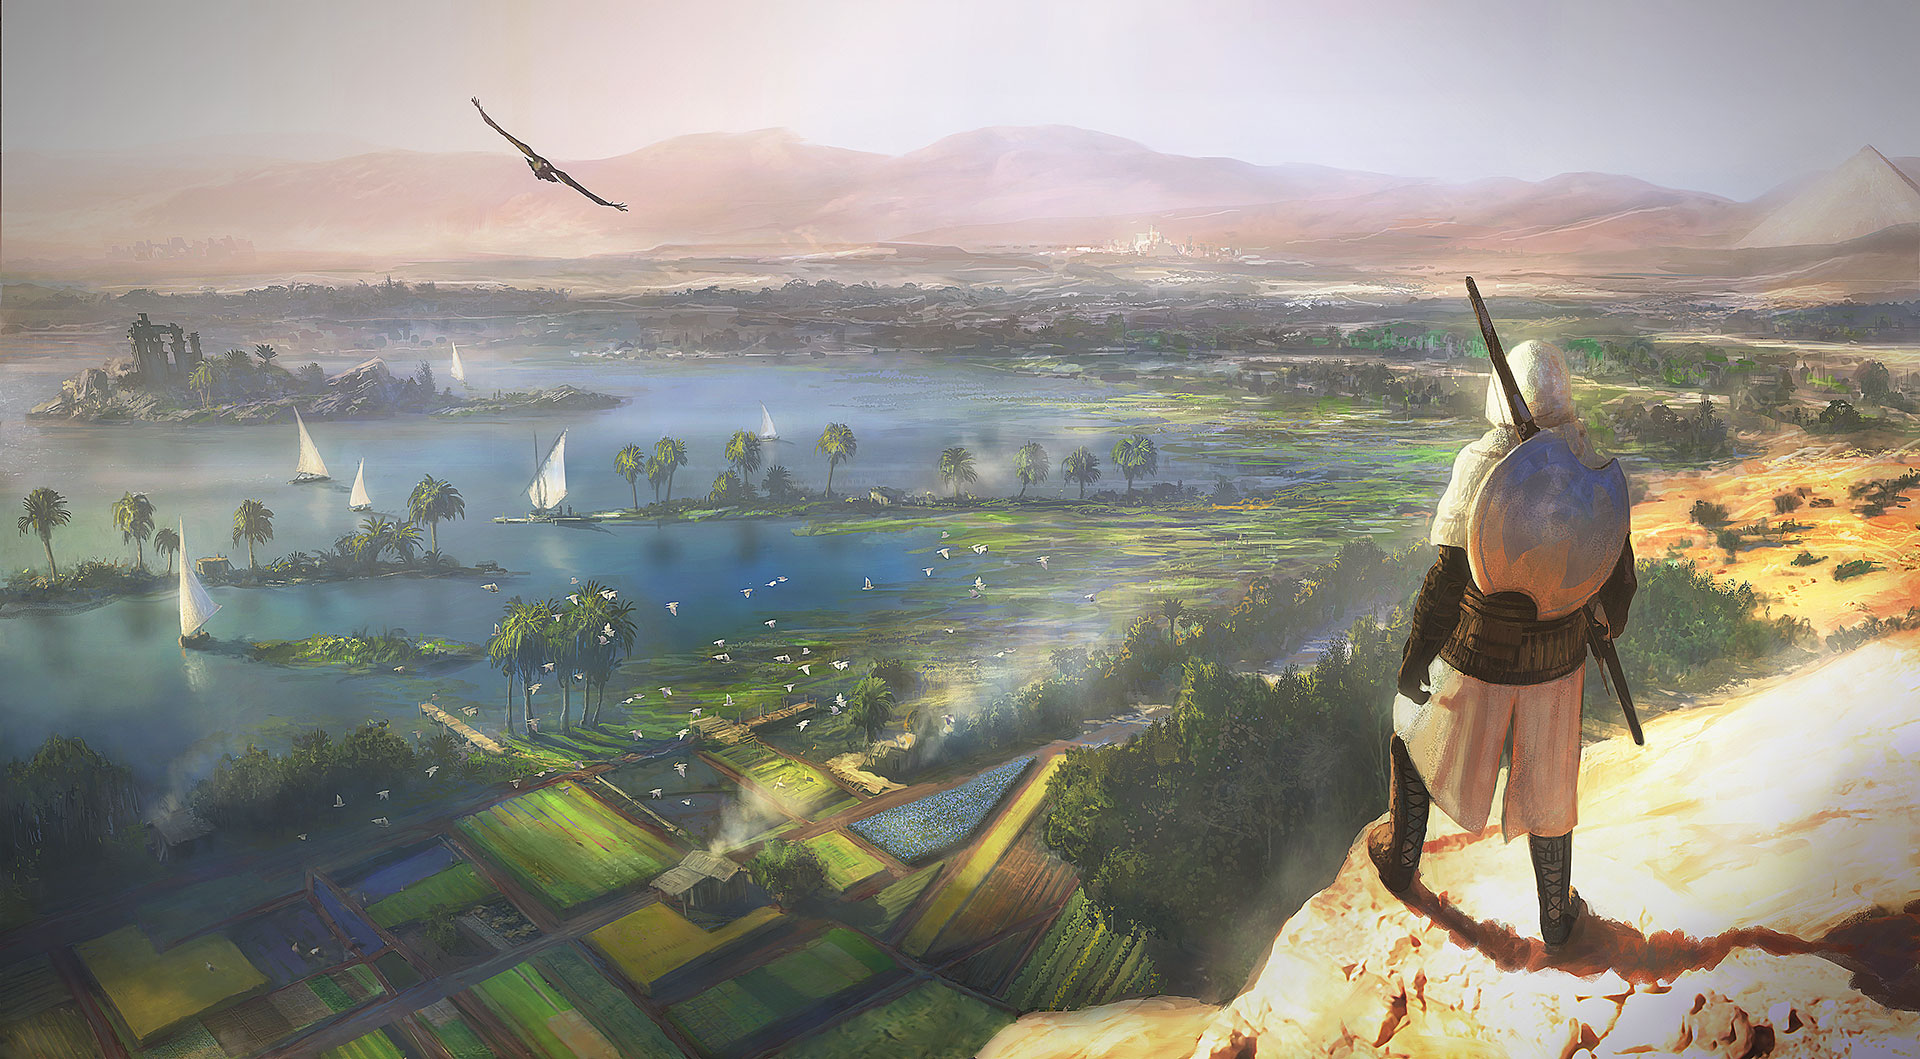 Assassin's Creed surplombant la vallée du Nil